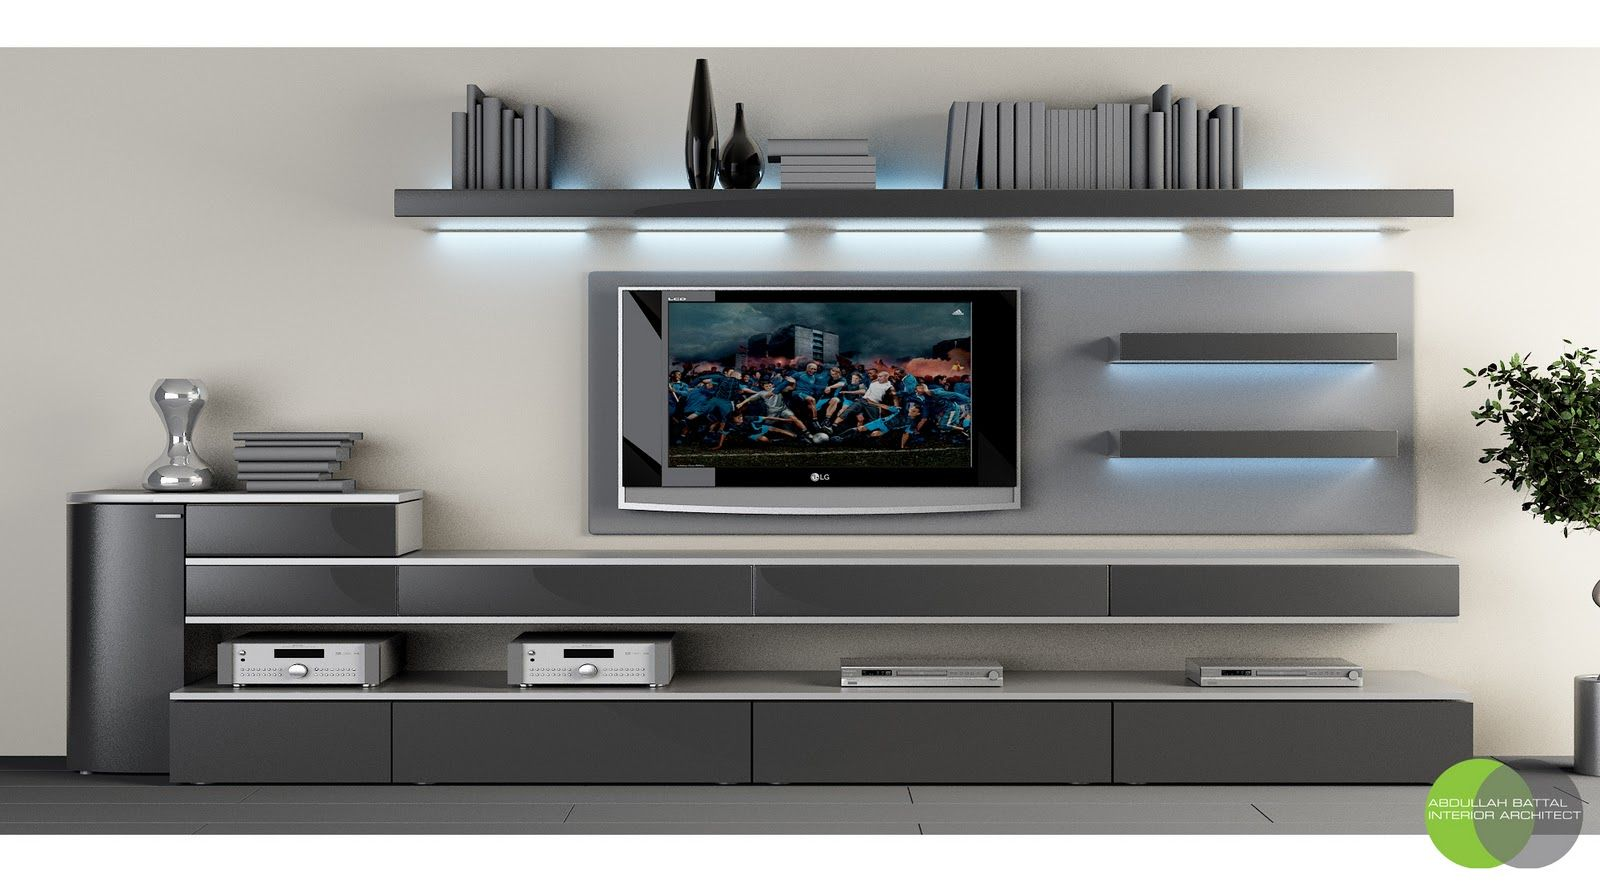 Tv unit design hd wallpapers download free tv unit design tumblr pinterest hd wallpapers - Contemporary tv wall unit designs ...